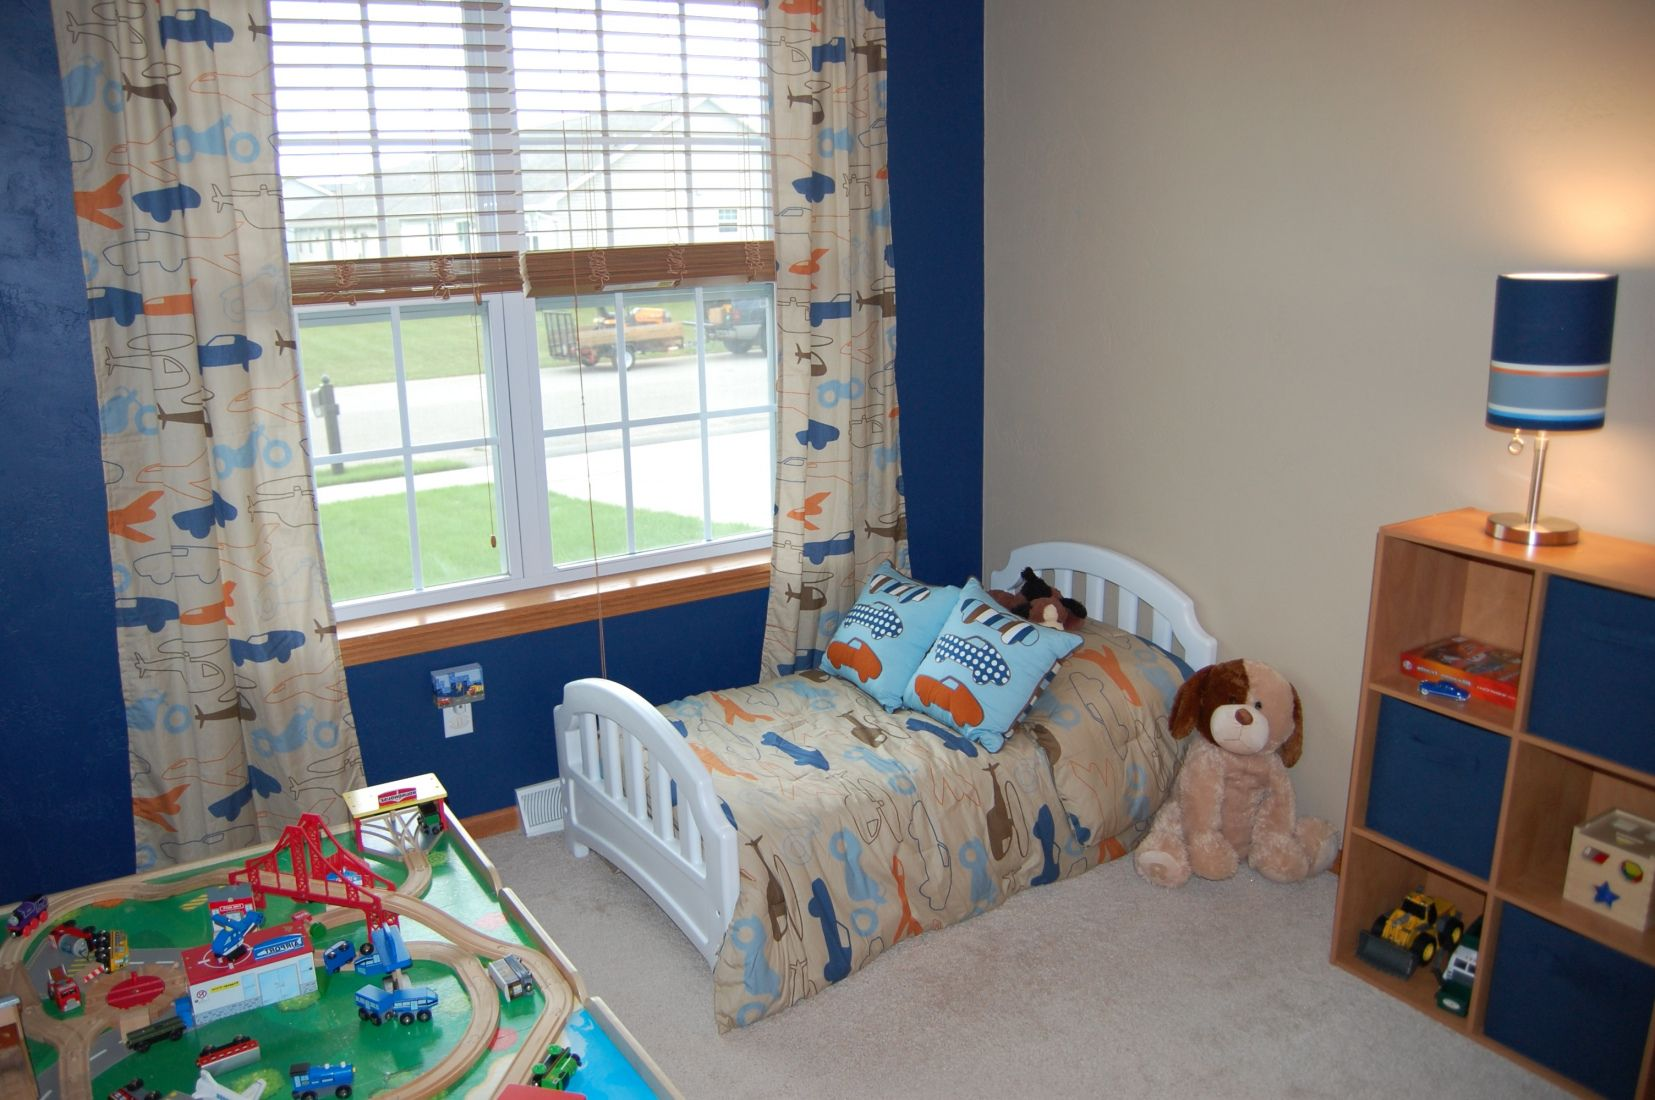 99 Decorating A Toddler Boy Room Low Budget Bedroom Decorating Ideas Check More At Http Davidhyo Boys Bedroom Themes Toddler Boys Room Boy Toddler Bedroom